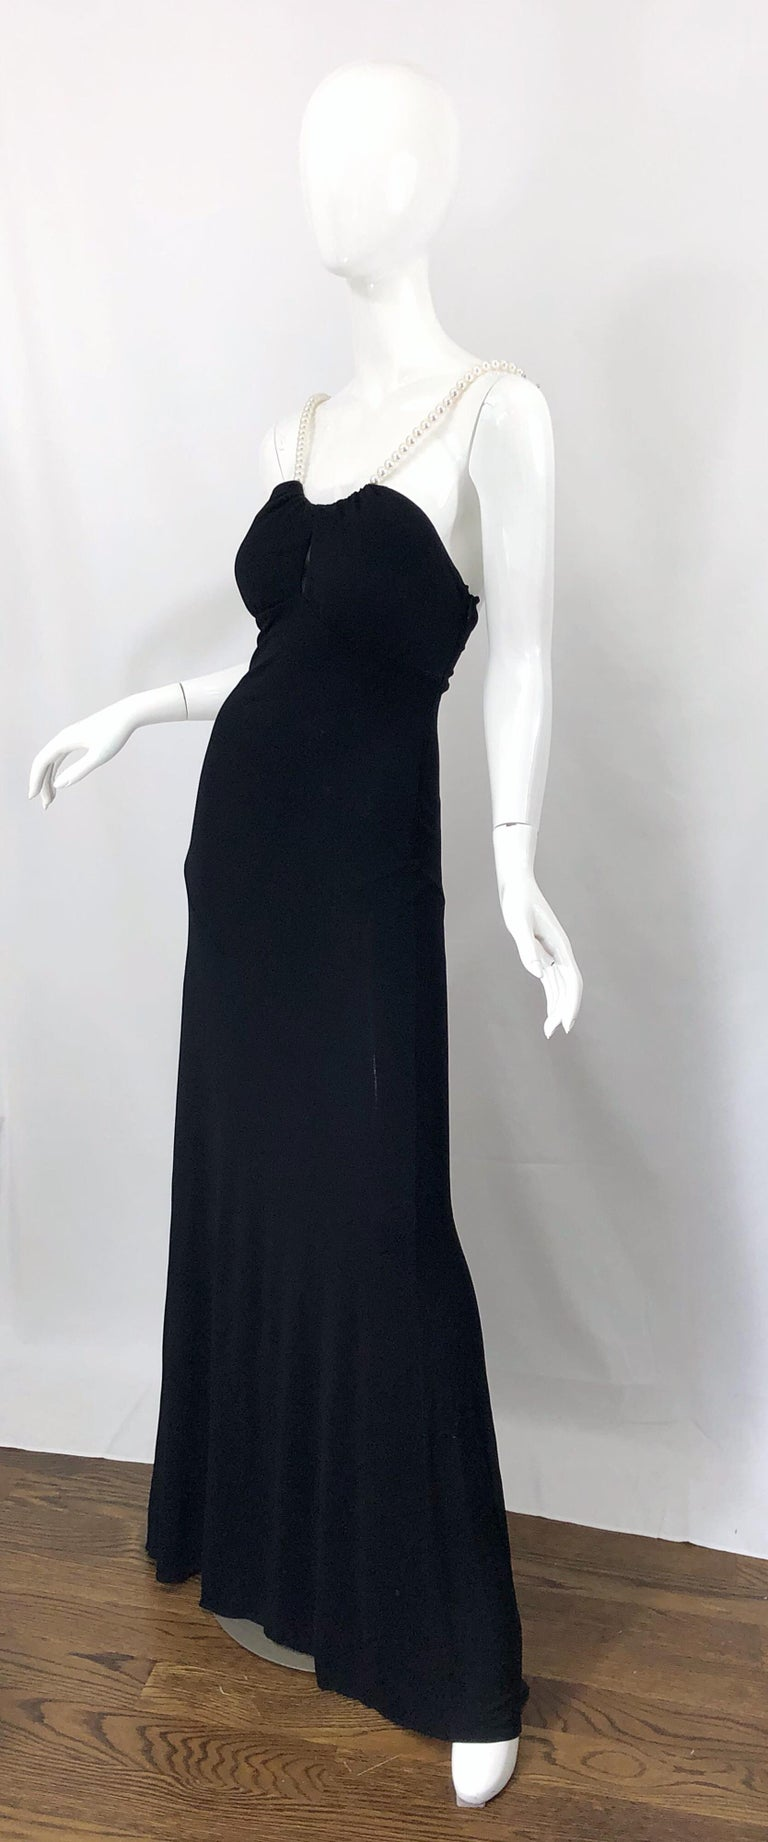 Michael Kors Collection Pearl Open Back Size 4 / 6 Black Grecian Gown Dress For Sale 2